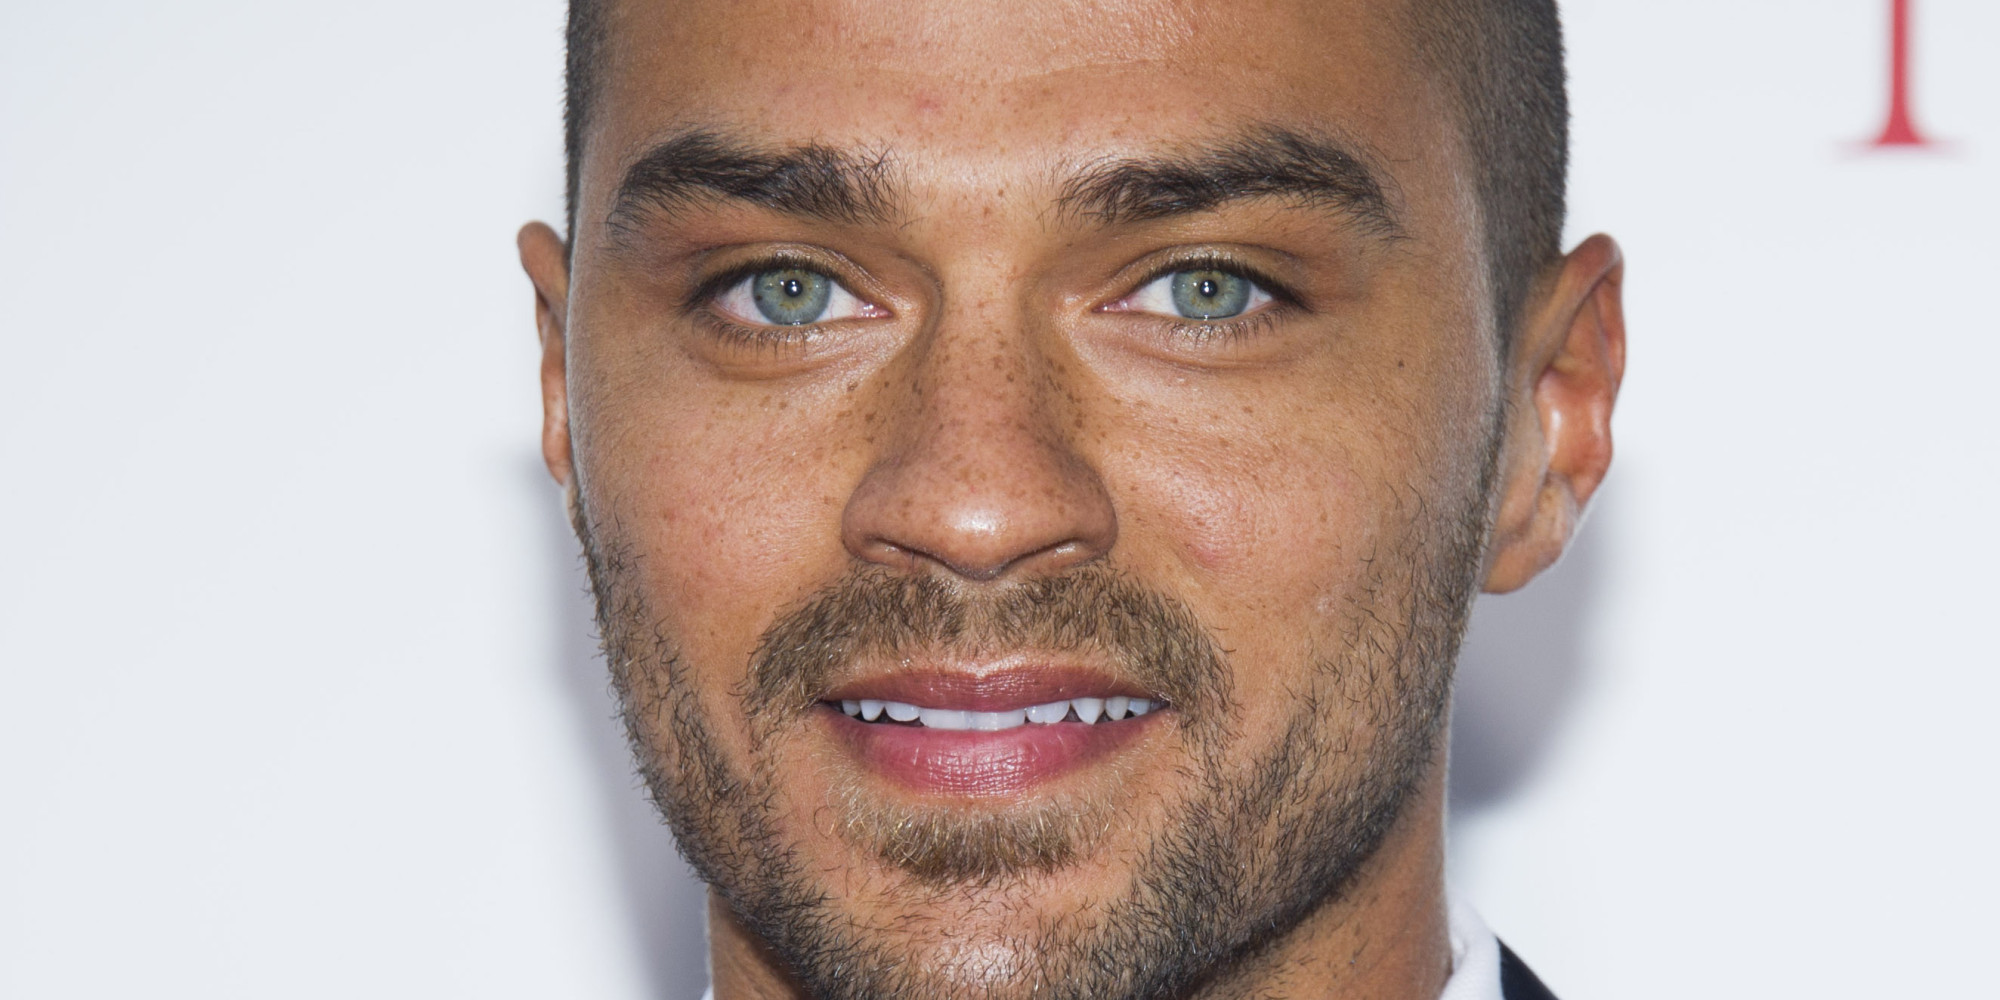 """Jesse Williams attends the premiere of """"Lee Daniels' The Butler"""" on Monday, August 5, 2013 in New York. (Photo by Charles Sykes/Invision/AP)"""